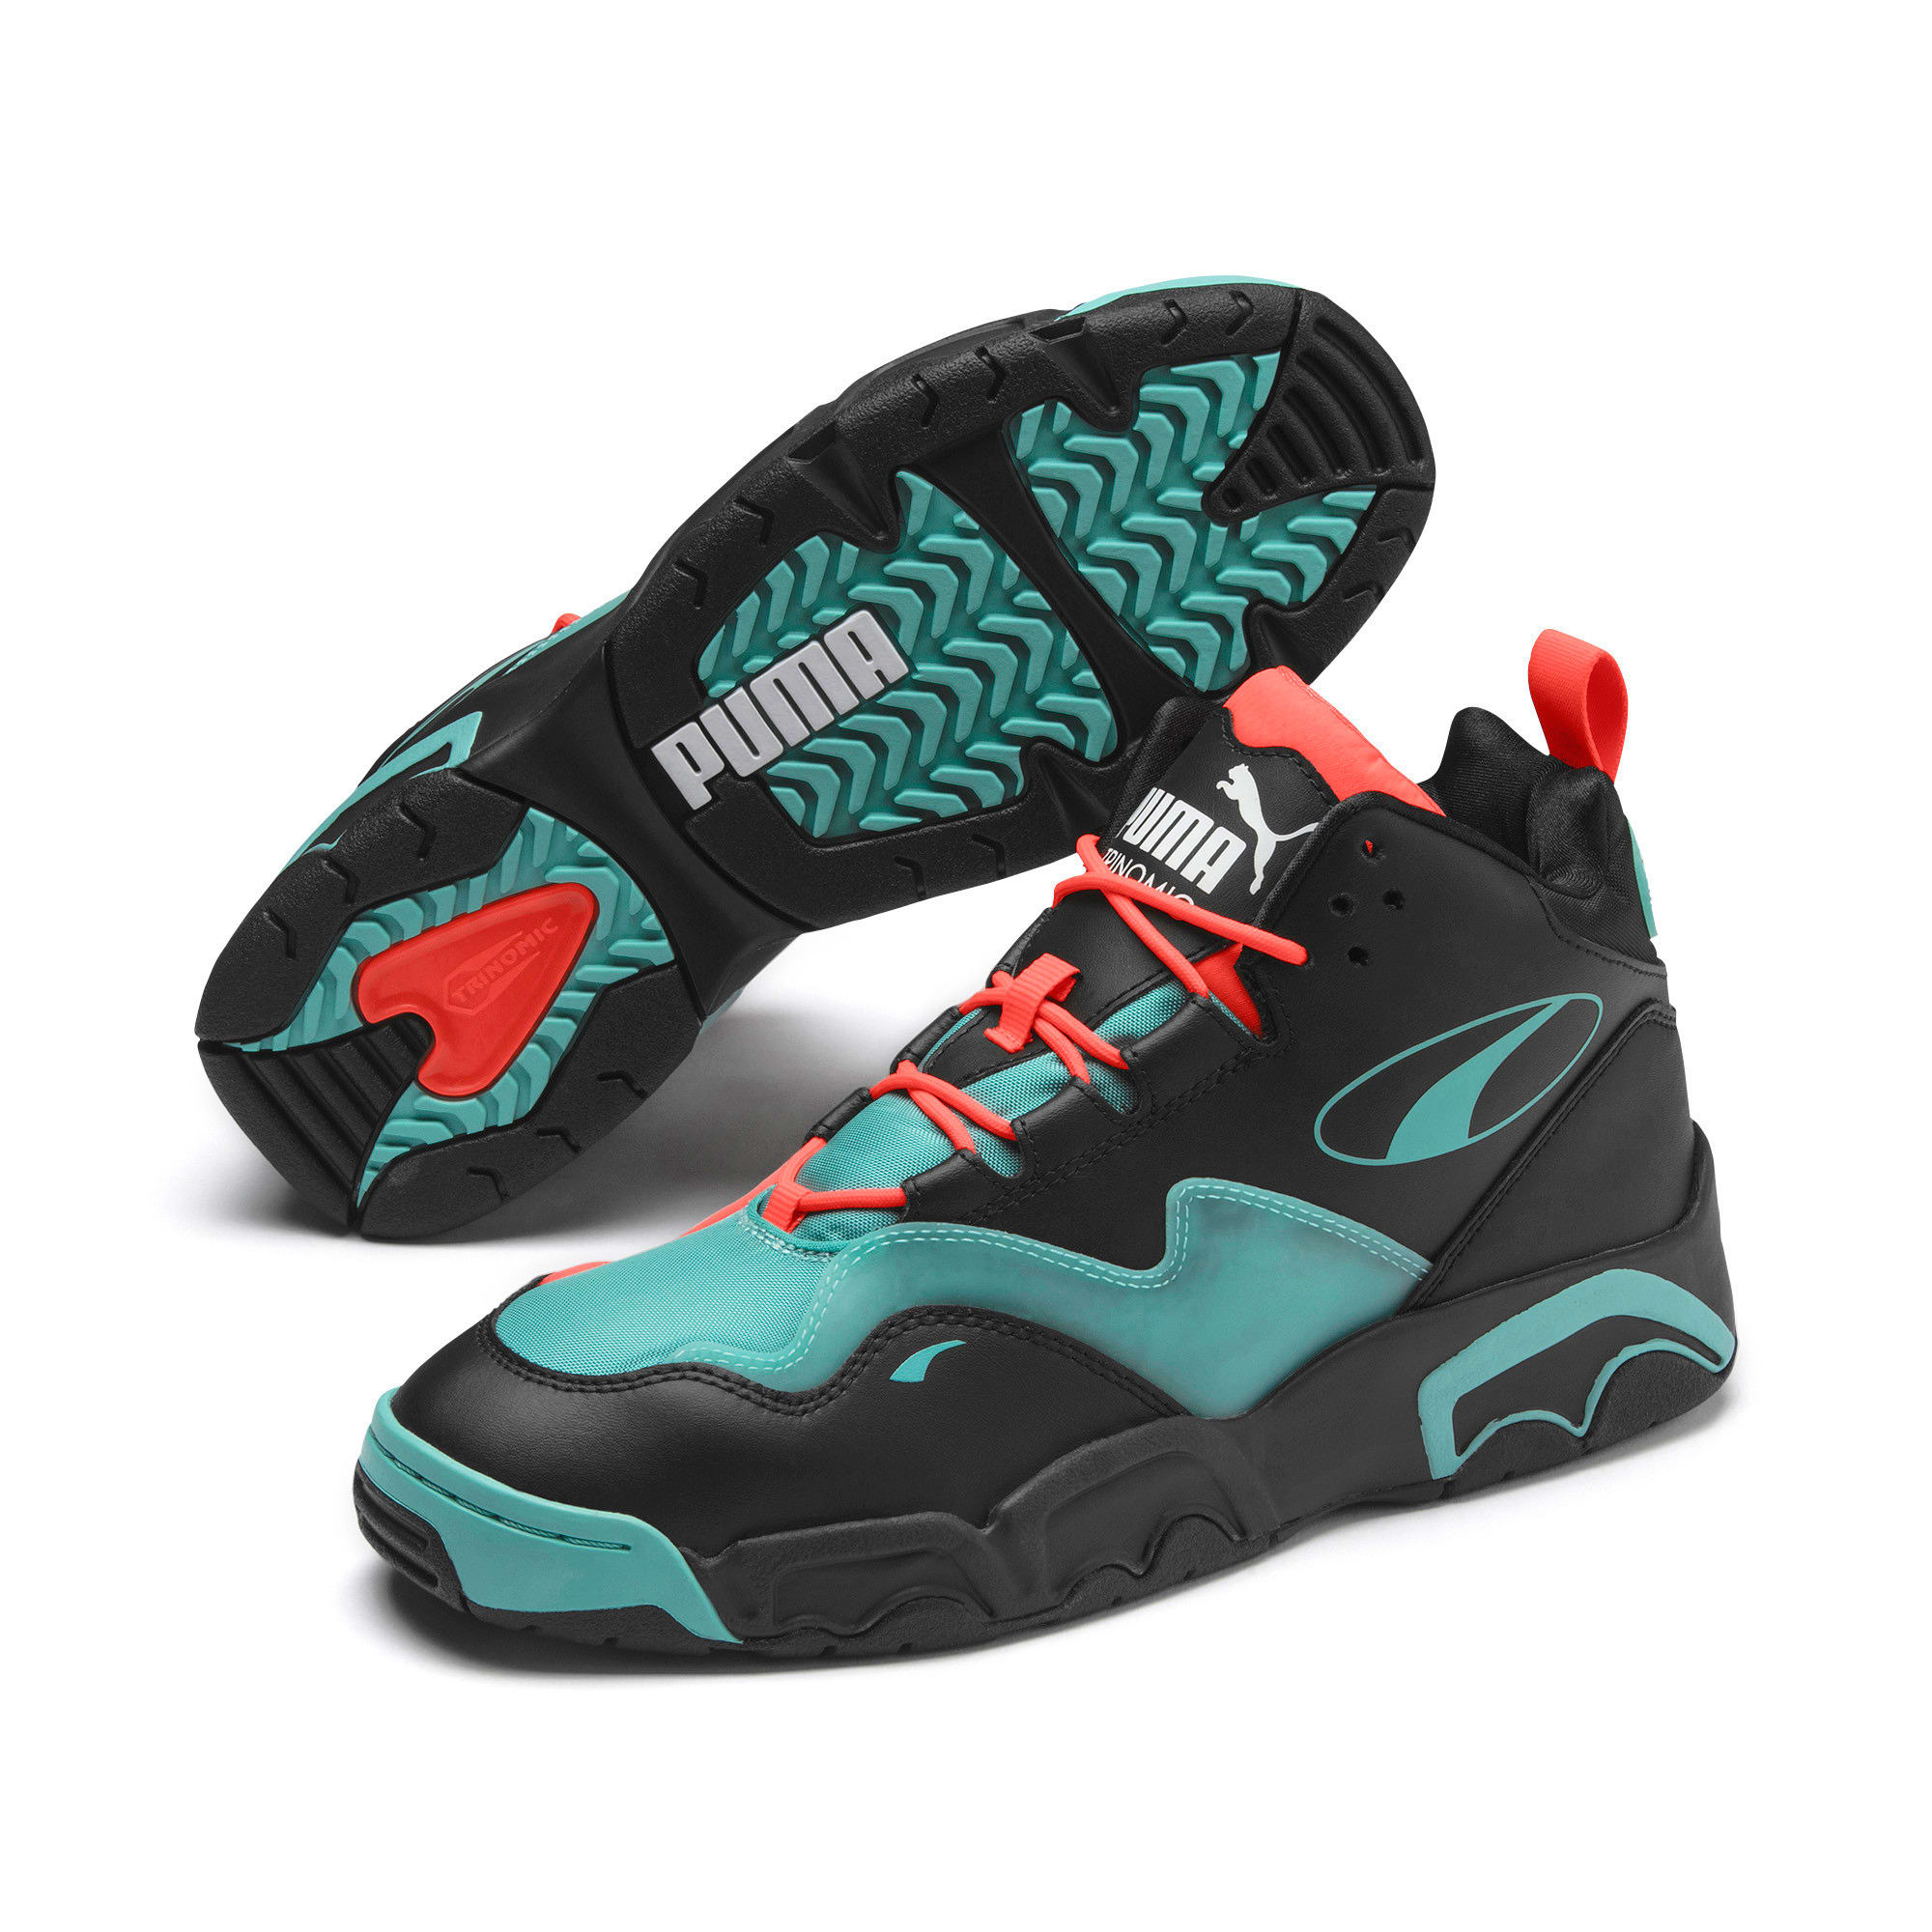 Thumbnail 3 of Source Mid Buzzer Sneakers, P Blk-Nrgy Red-BlueTurquoise, medium